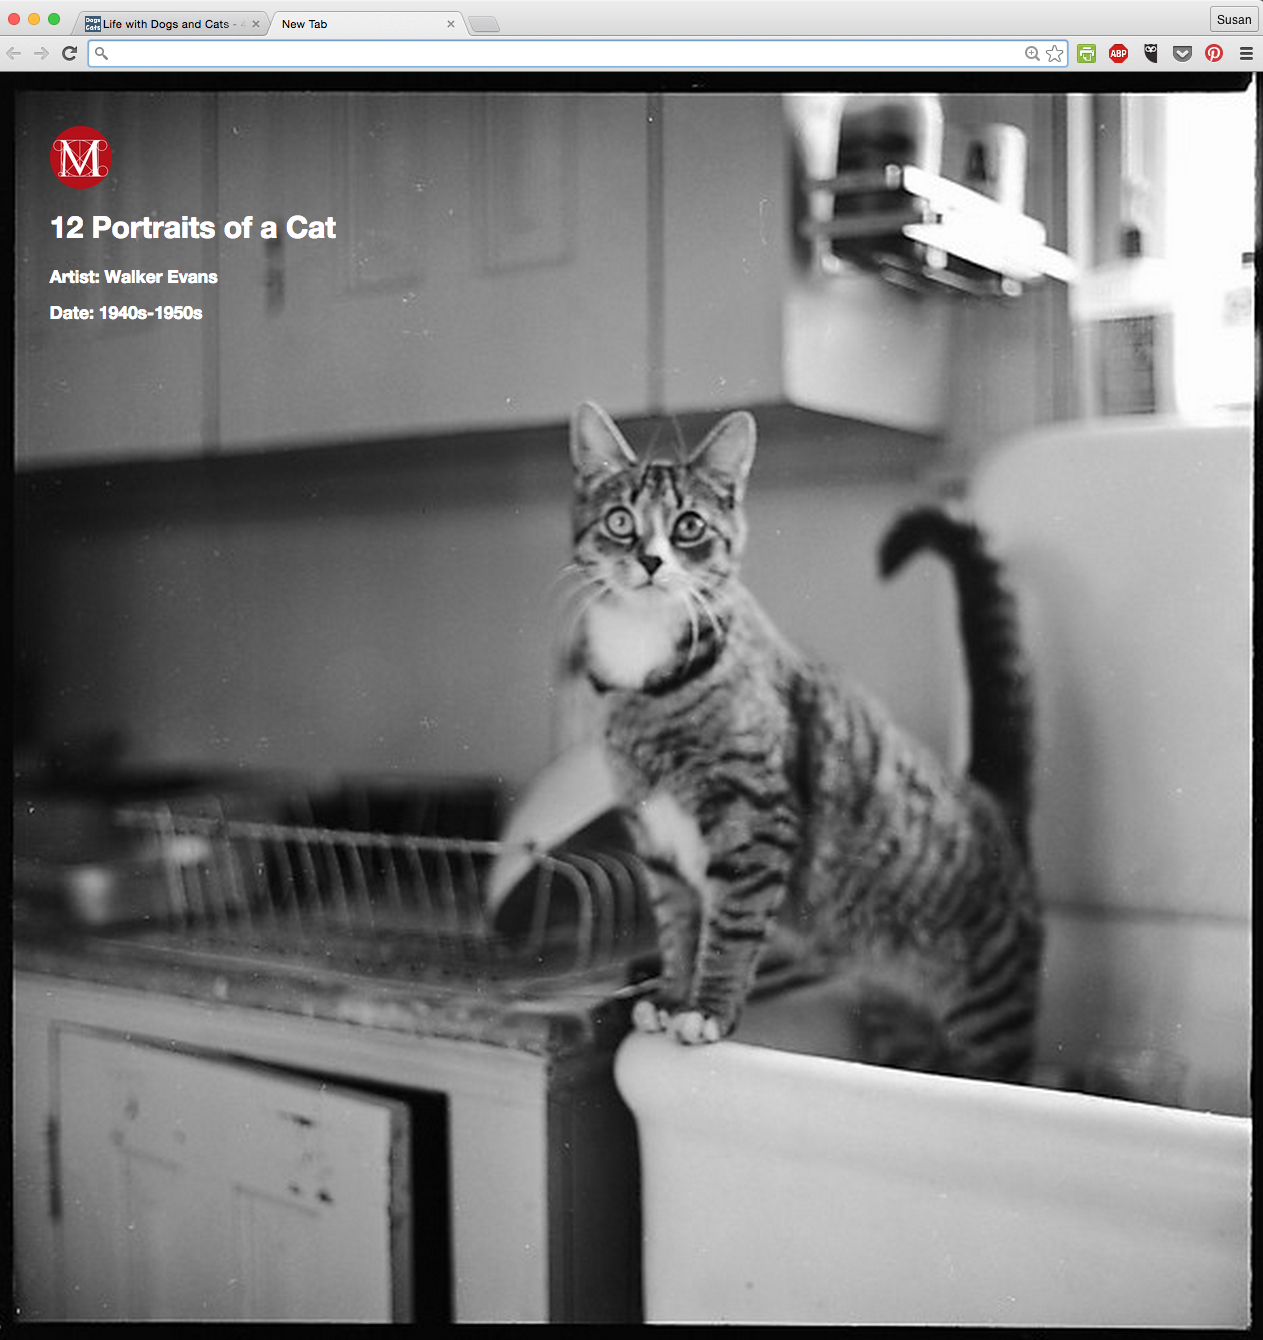 12 Portraits of a Cat by Walker Evans from the Meow Met Chrome Extension.